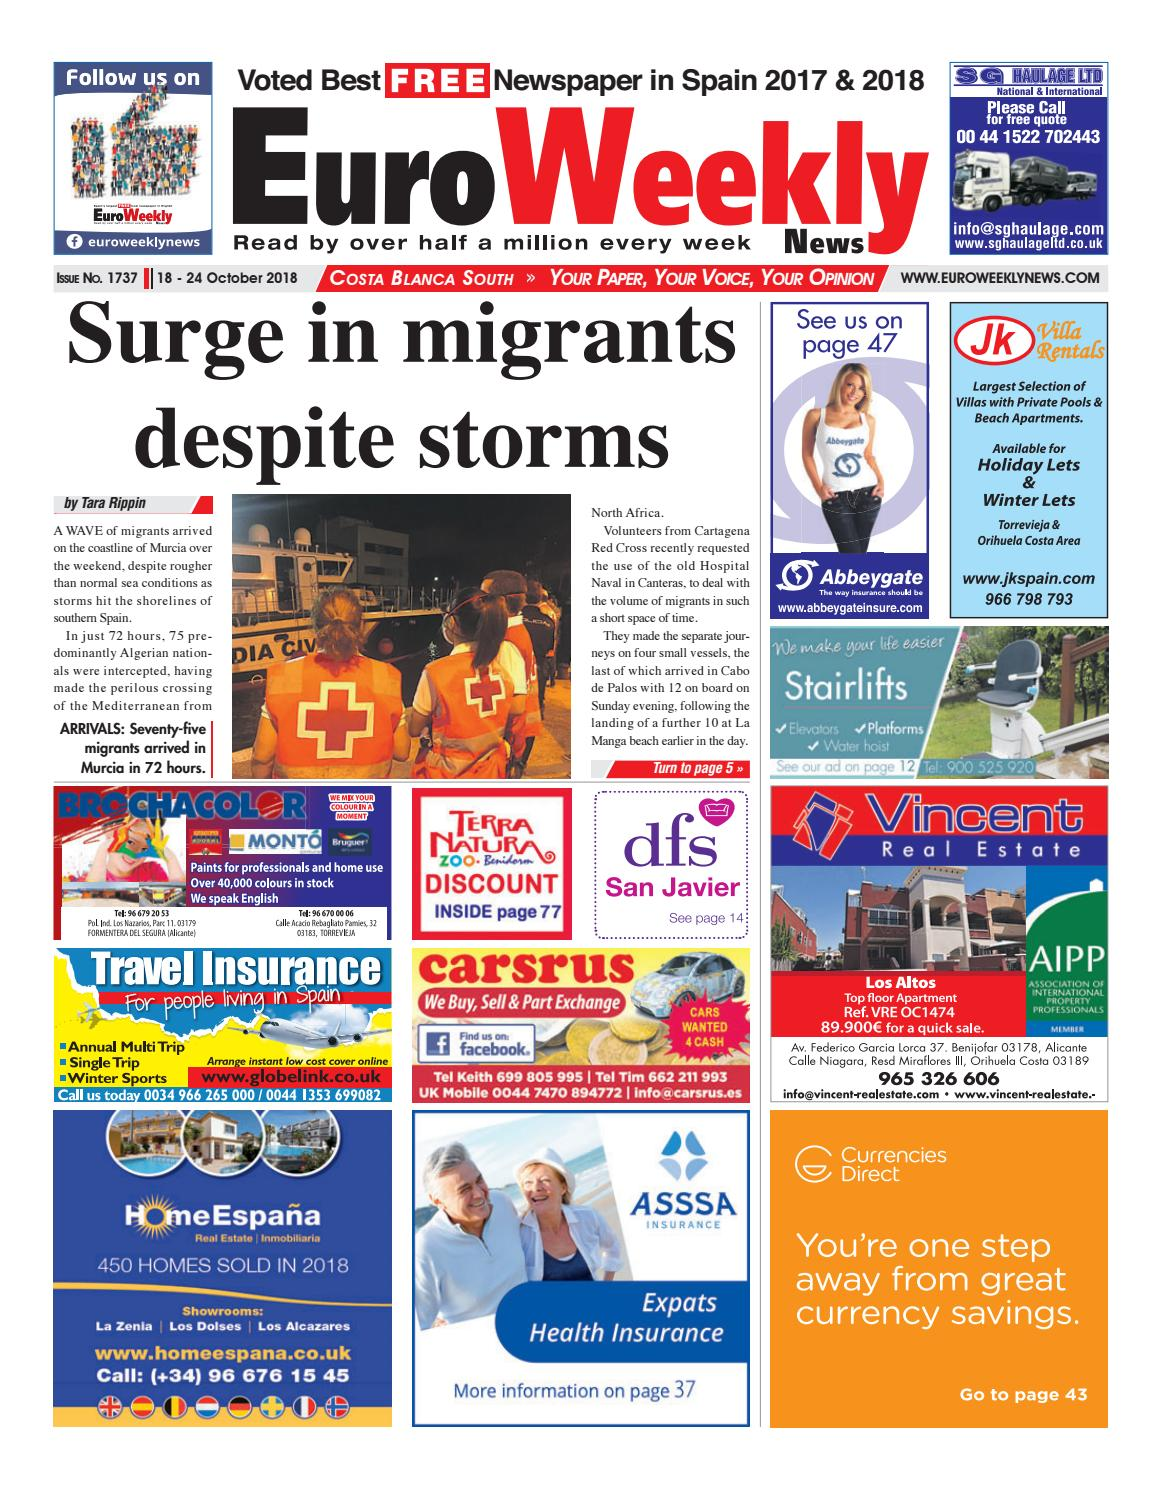 723071f24187 Euro Weekly News - Costa Blanca South October 18 - 24 2018 Issue 1737 by  Euro Weekly News Media S.A. - issuu